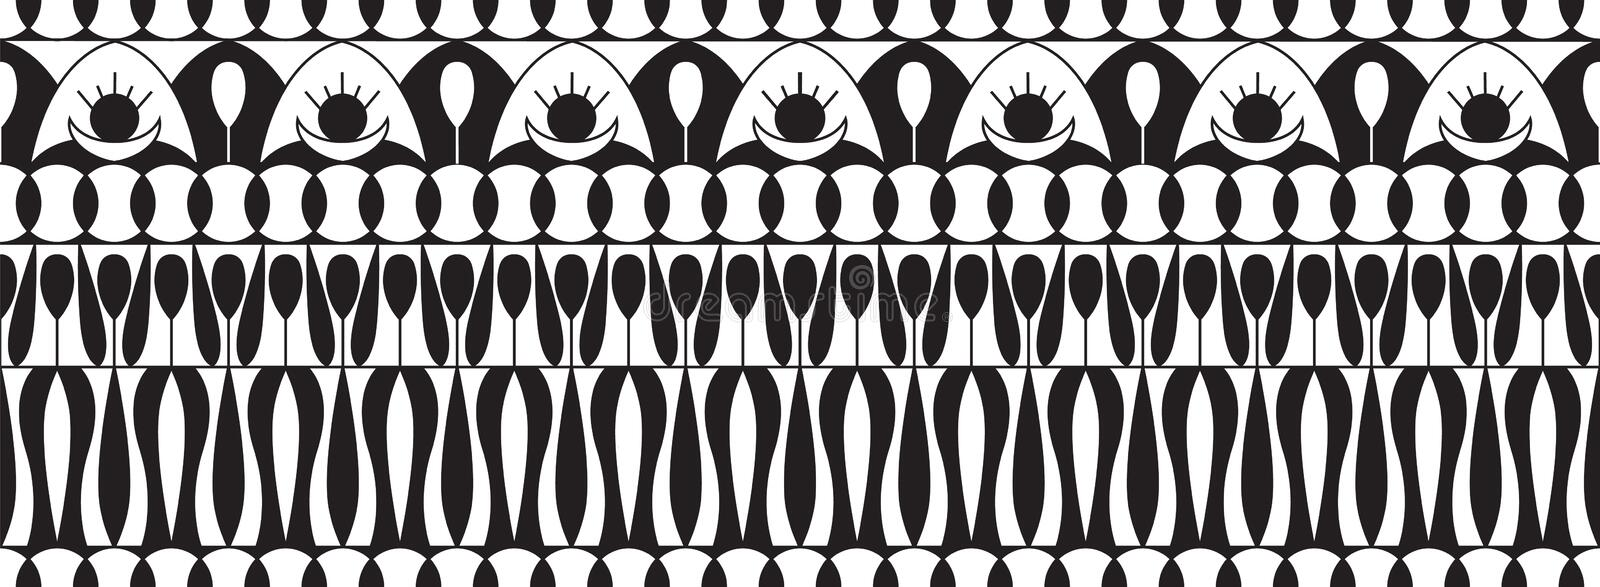 Geometric folklore ornament. Ethnic vector texture. Seamless striped pattern in vintage style. Monochrome illustration vector illustration